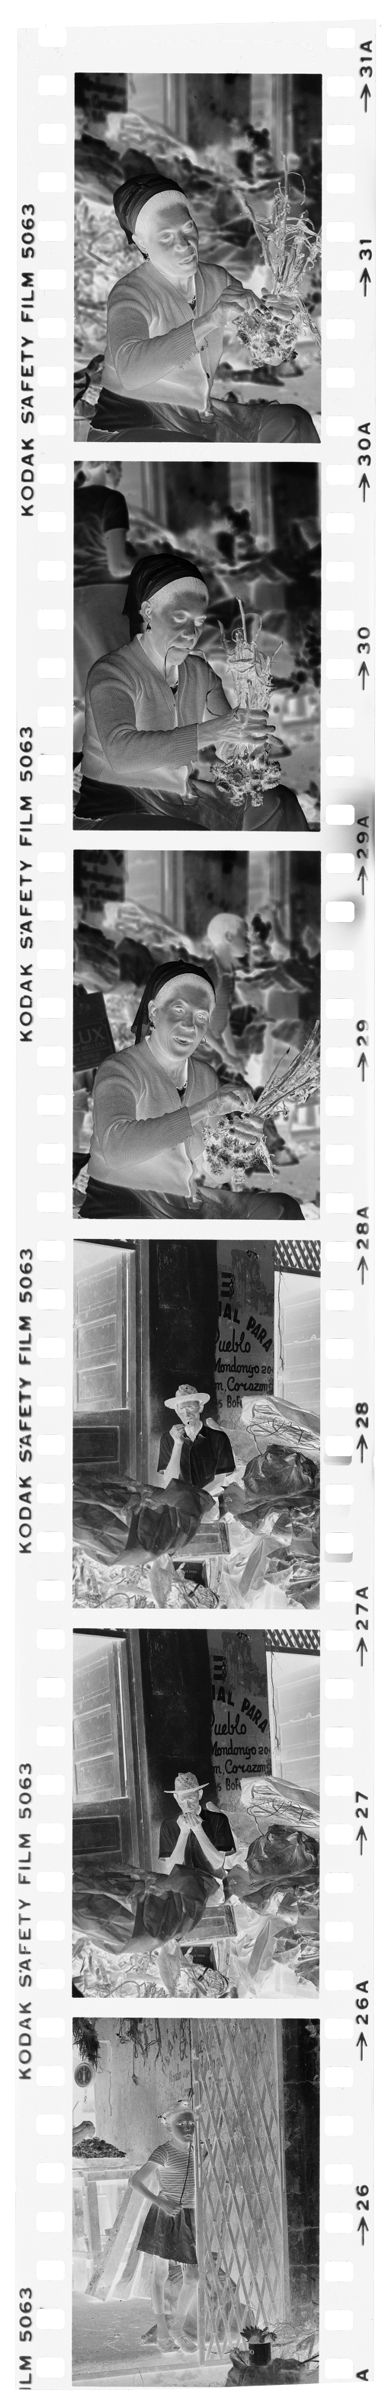 Untitled (Scenes In Front Of Market)